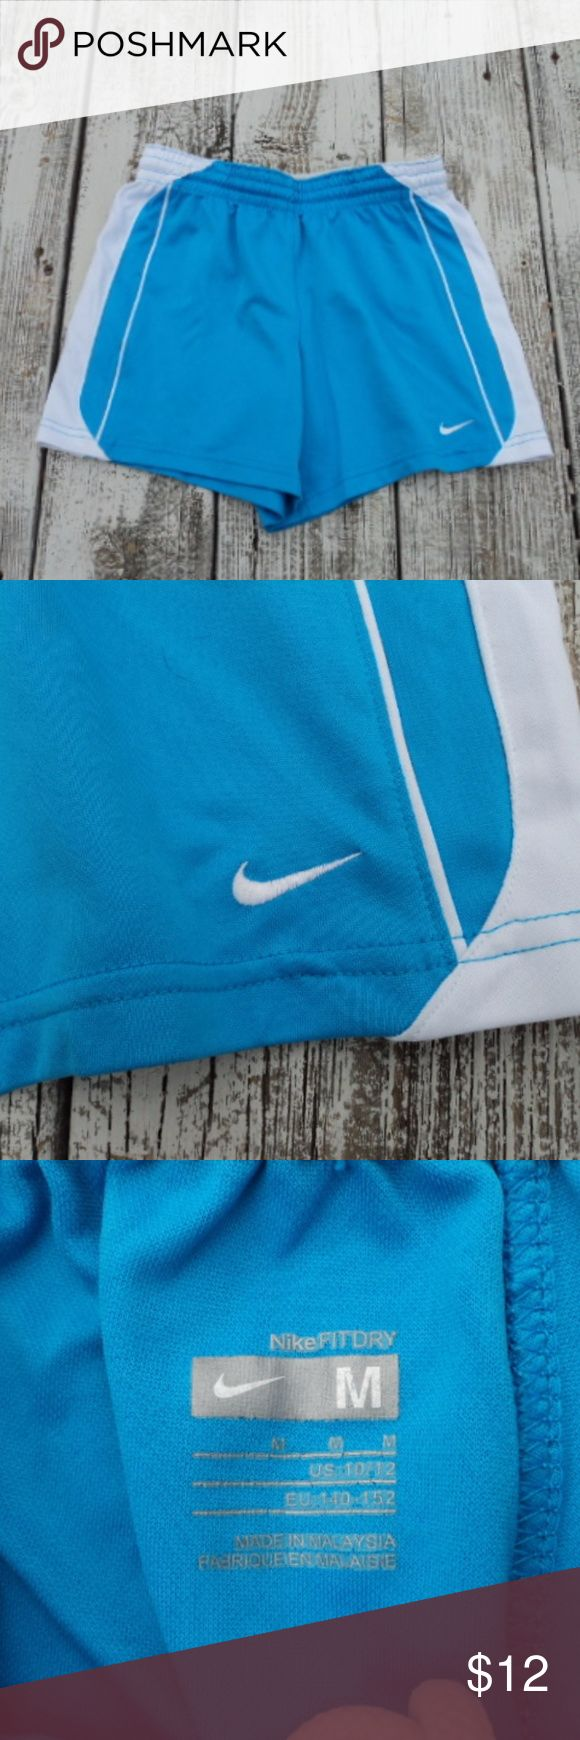 Girls Nike shorts Girls blue and white Nike Fit shorts.  In excellent condition.  No stains or signs of wear. Nike Bottoms Shorts